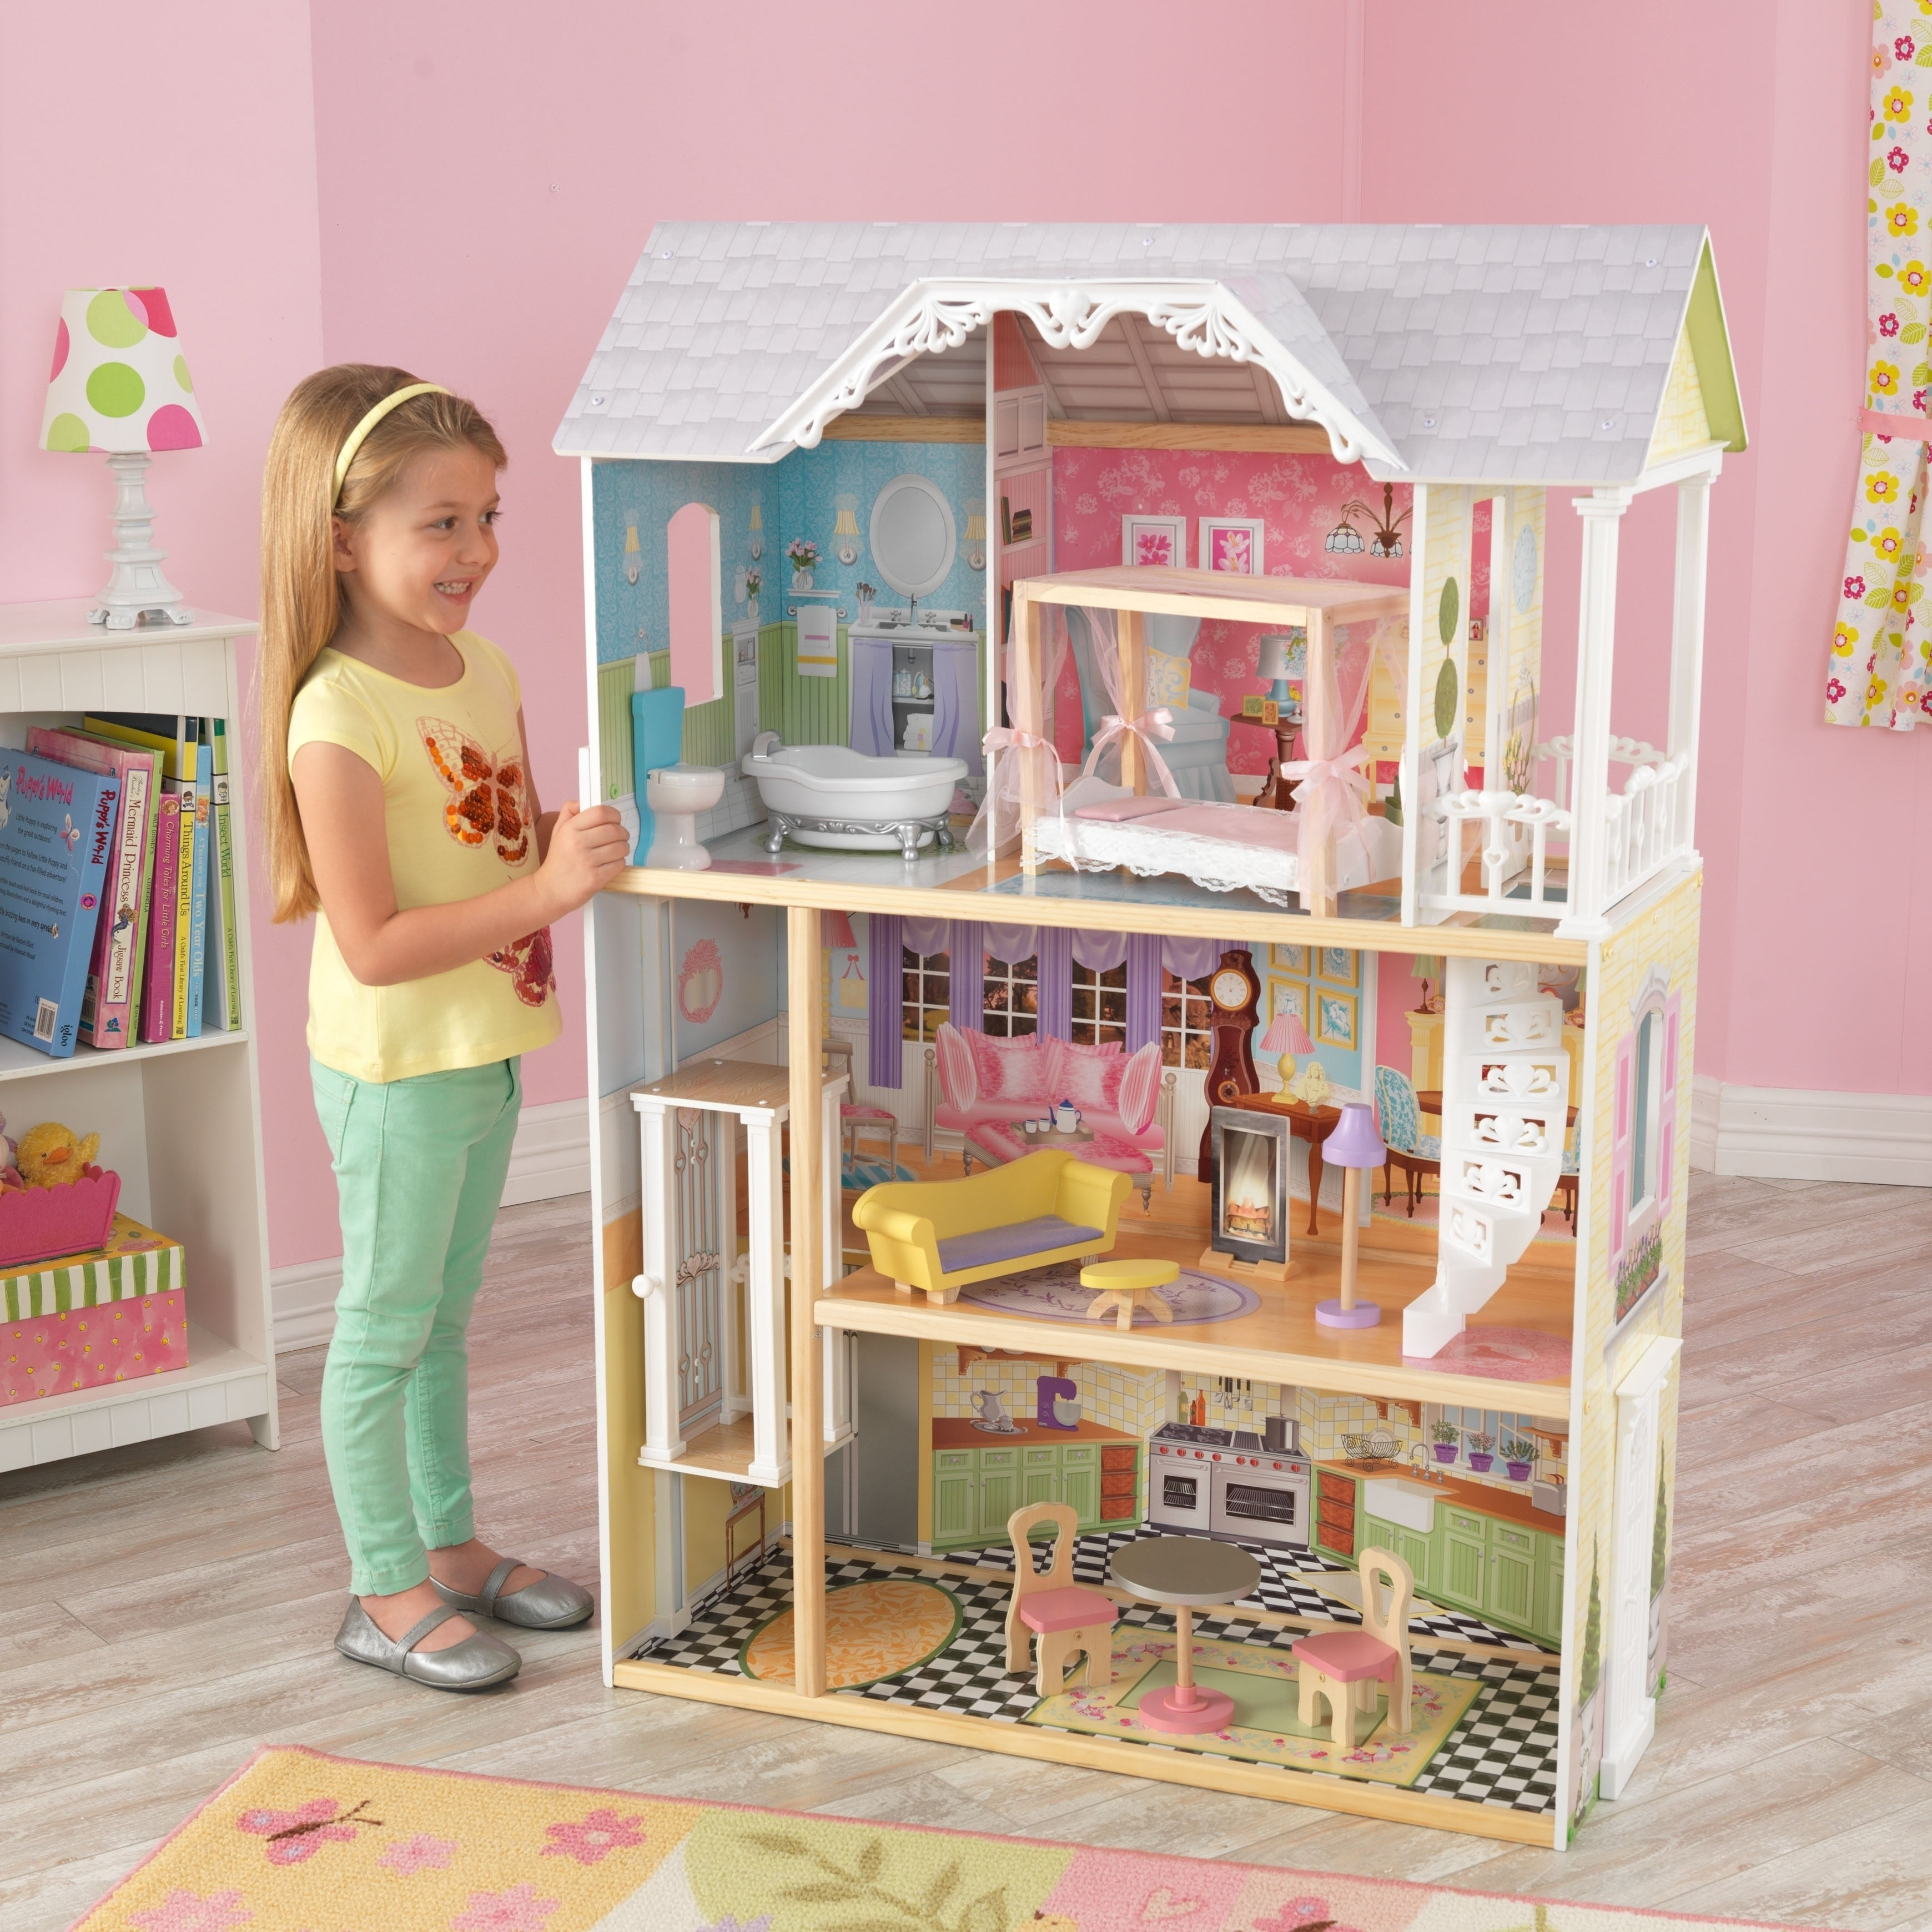 Shop Kaylee Dollhouse Free Shipping Today Overstock Com 18065205